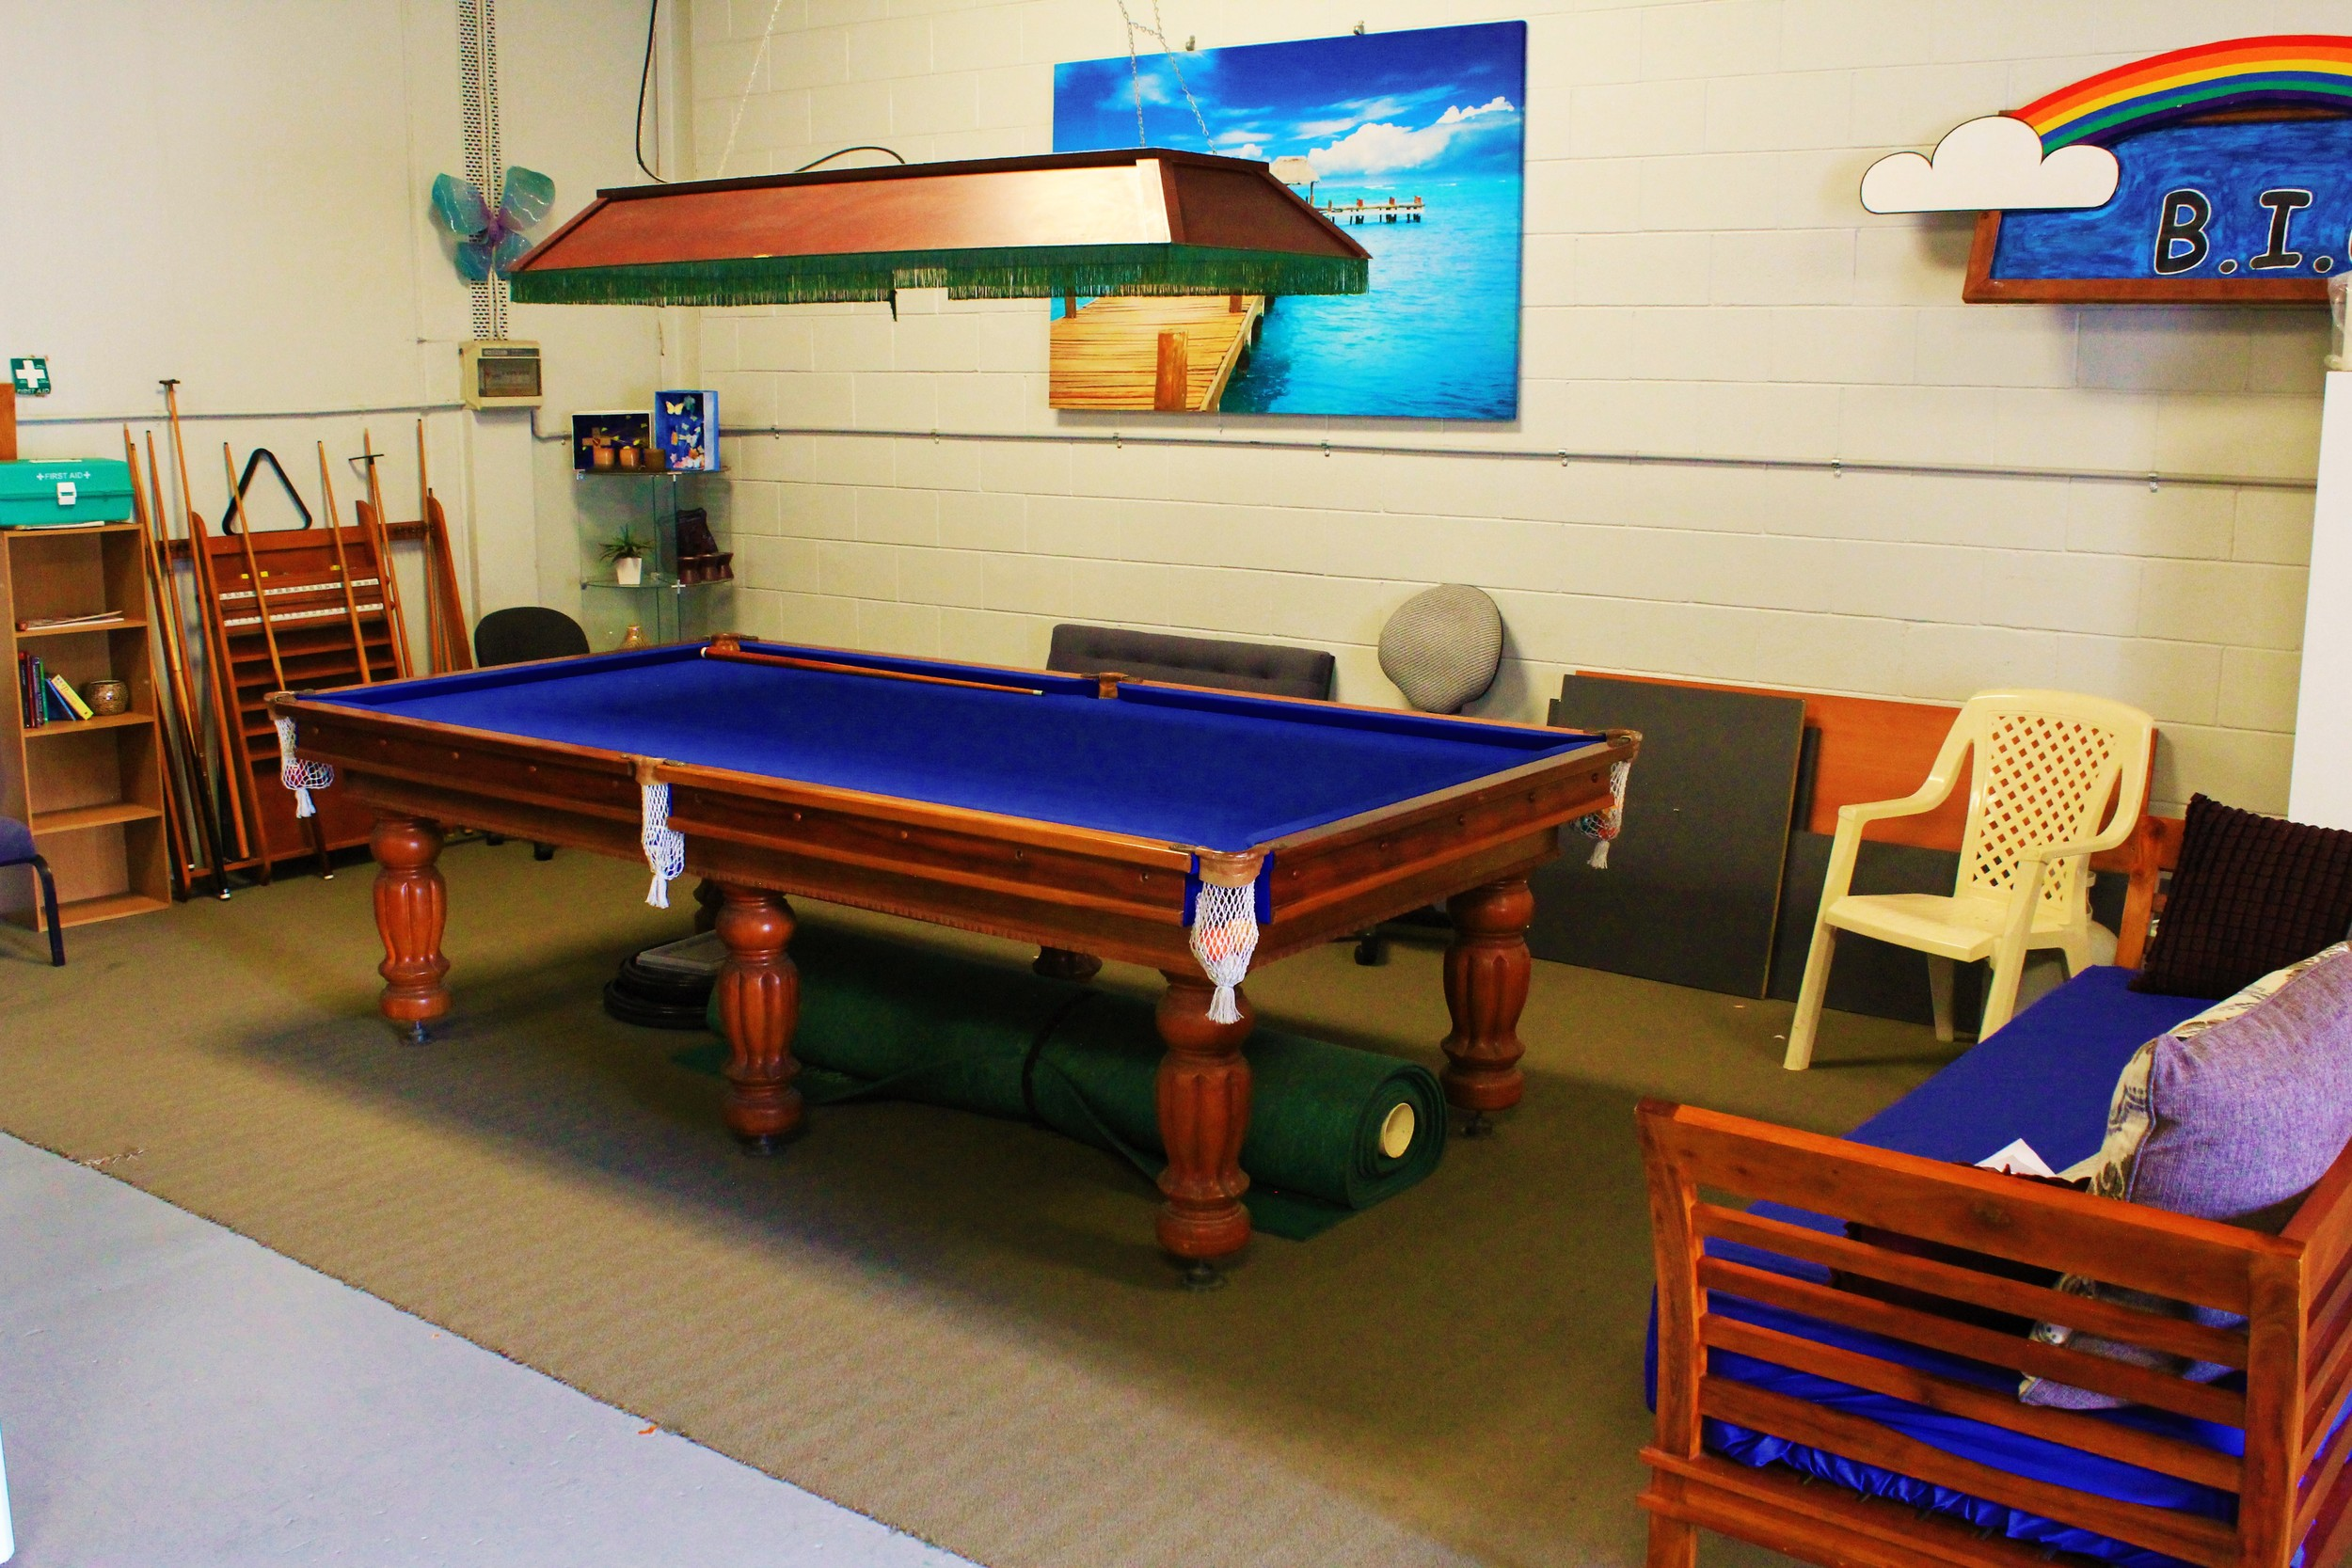 BIG - Bayside Initiatives Group Inc. - POOL TABLE